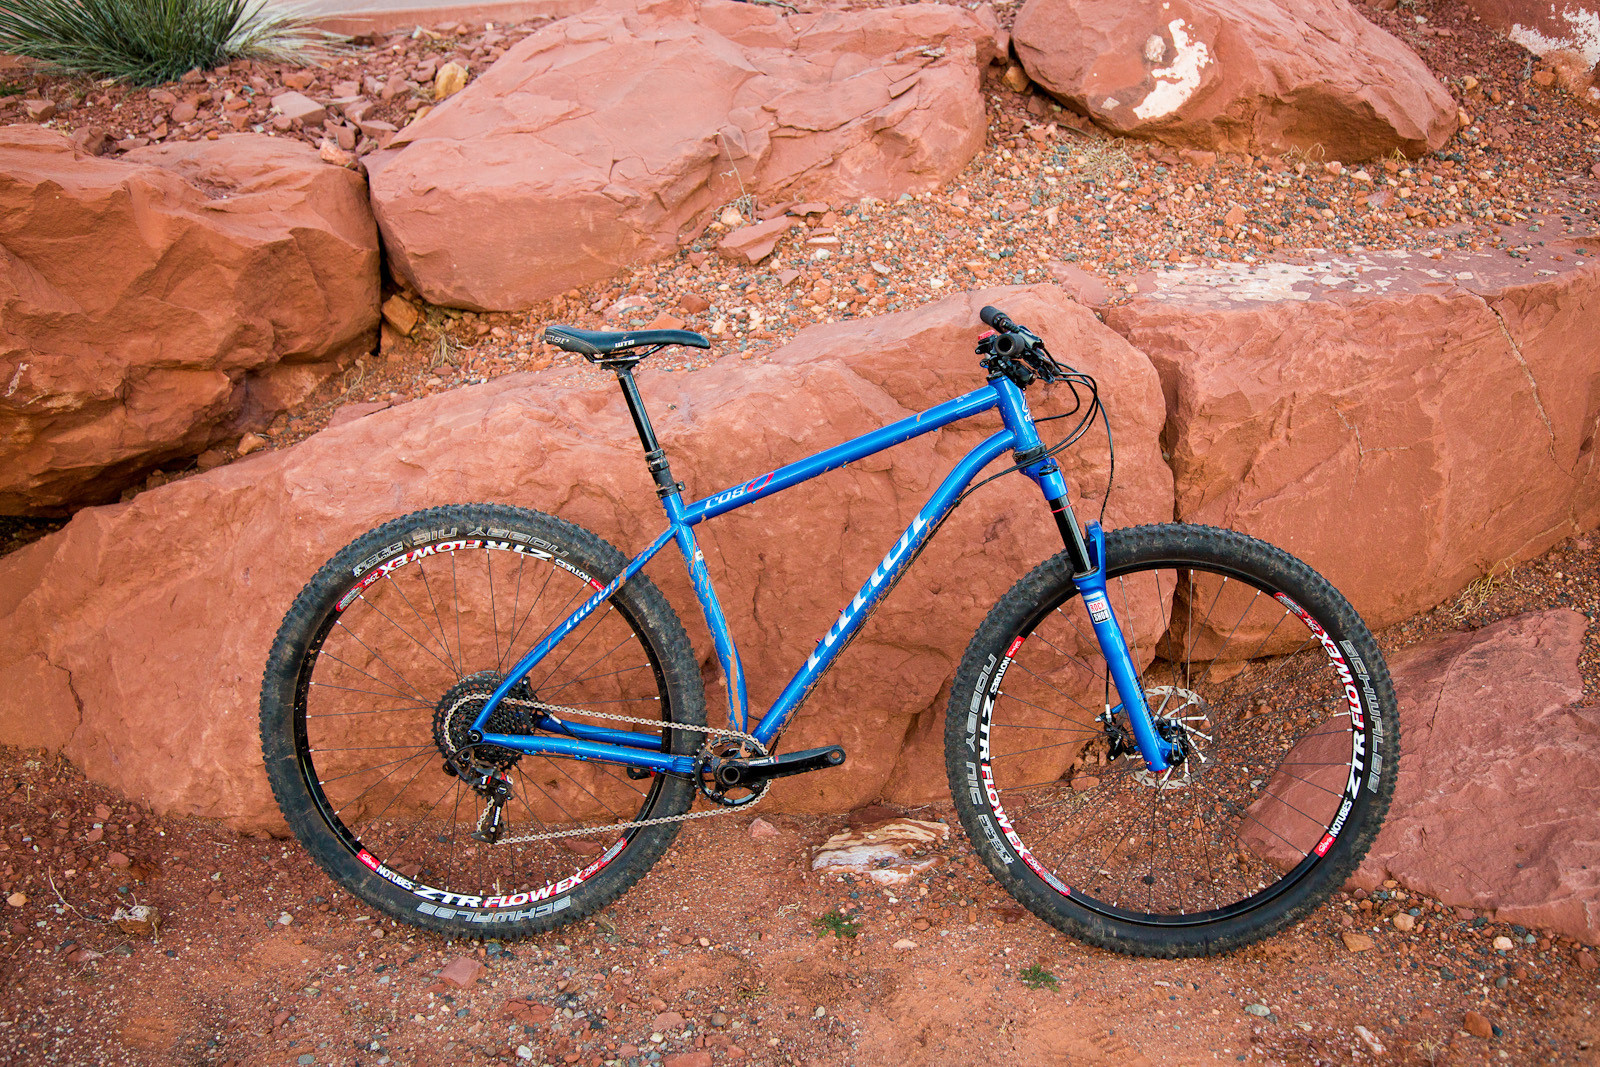 2014 Niner ROS 9 X01 - 2014 Test Sessions: Niner ROS 9 X01 - Mountain Biking Pictures - Vital MTB